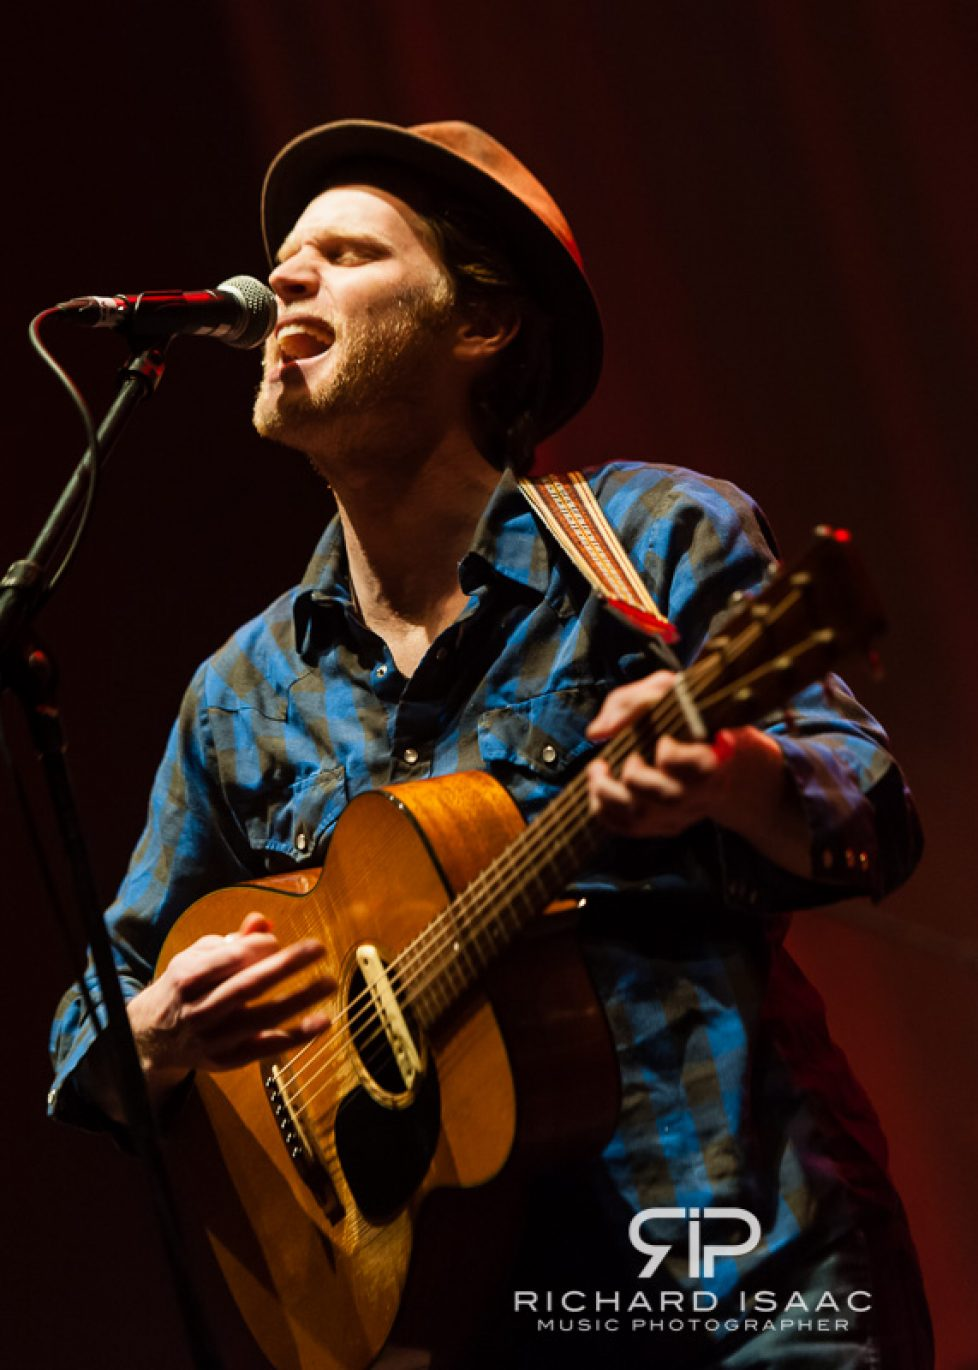 wpid-11-03-2013_The_Lumineers_gig_Brixton_Academy_05.jpg